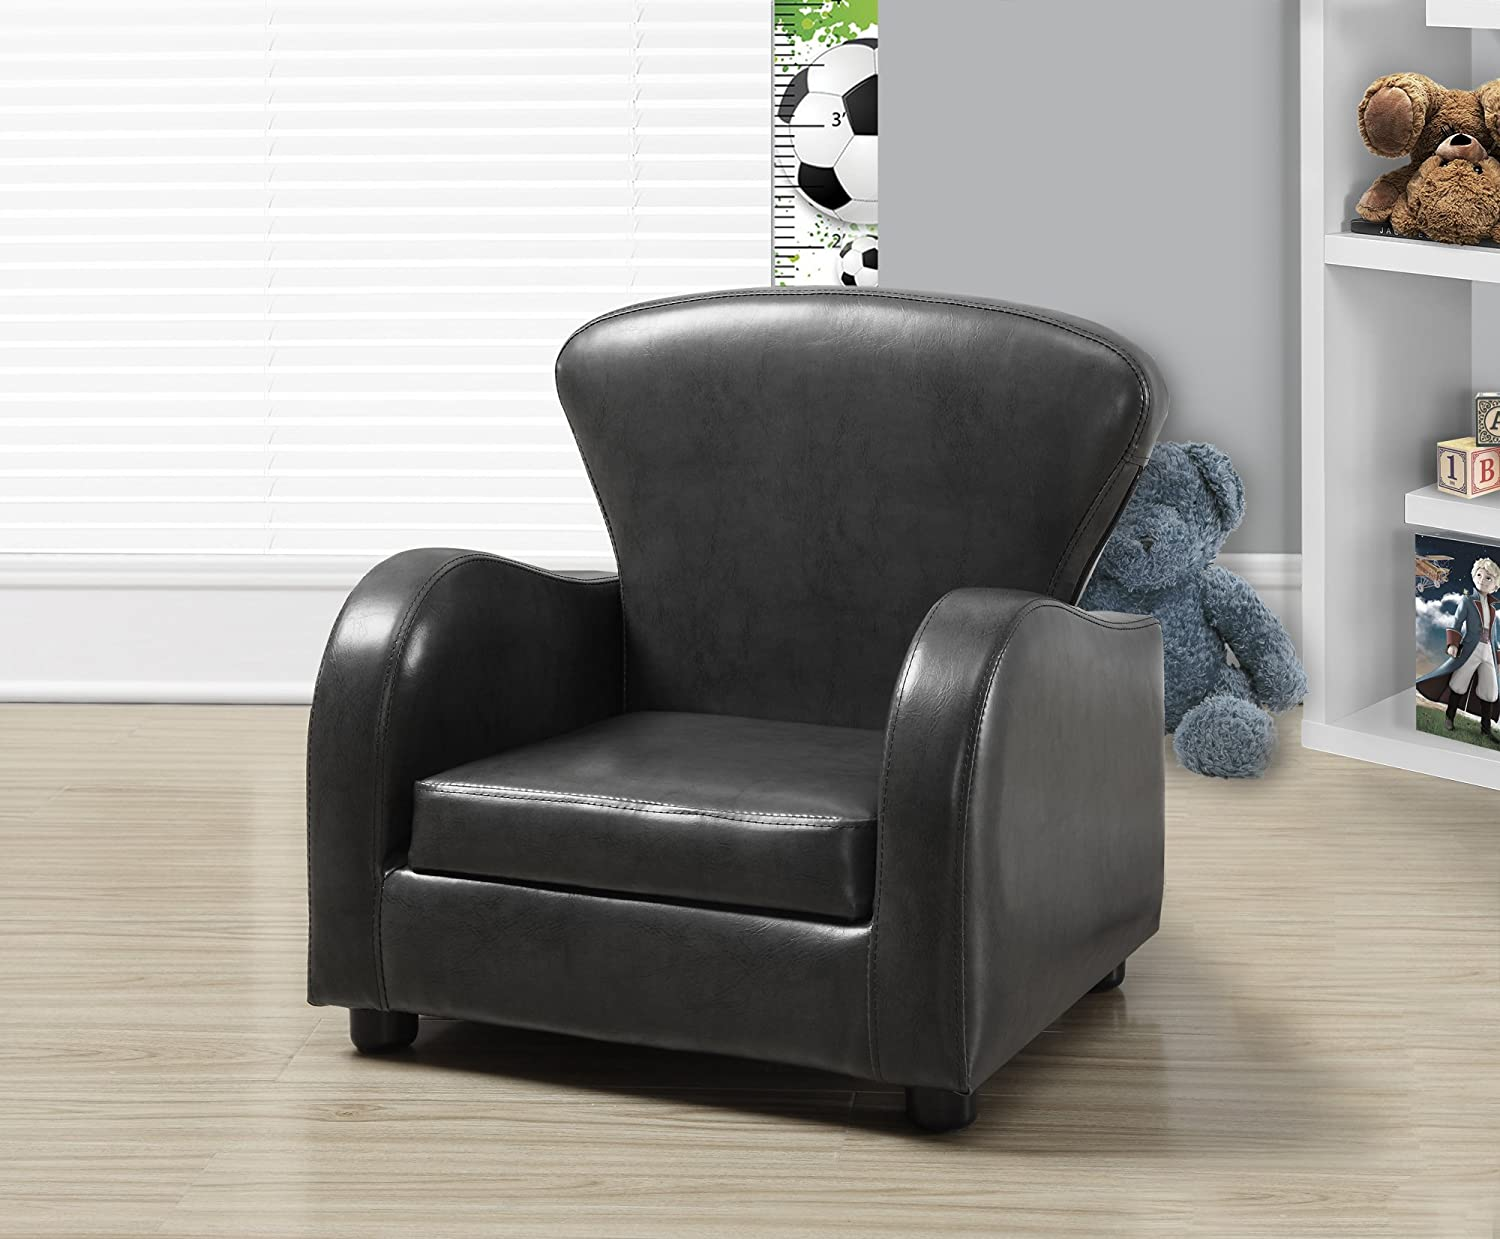 Admirable Monarch Specialties Charcoal Grey Leather Look Juvenile Club Chair 20 Inch Onthecornerstone Fun Painted Chair Ideas Images Onthecornerstoneorg